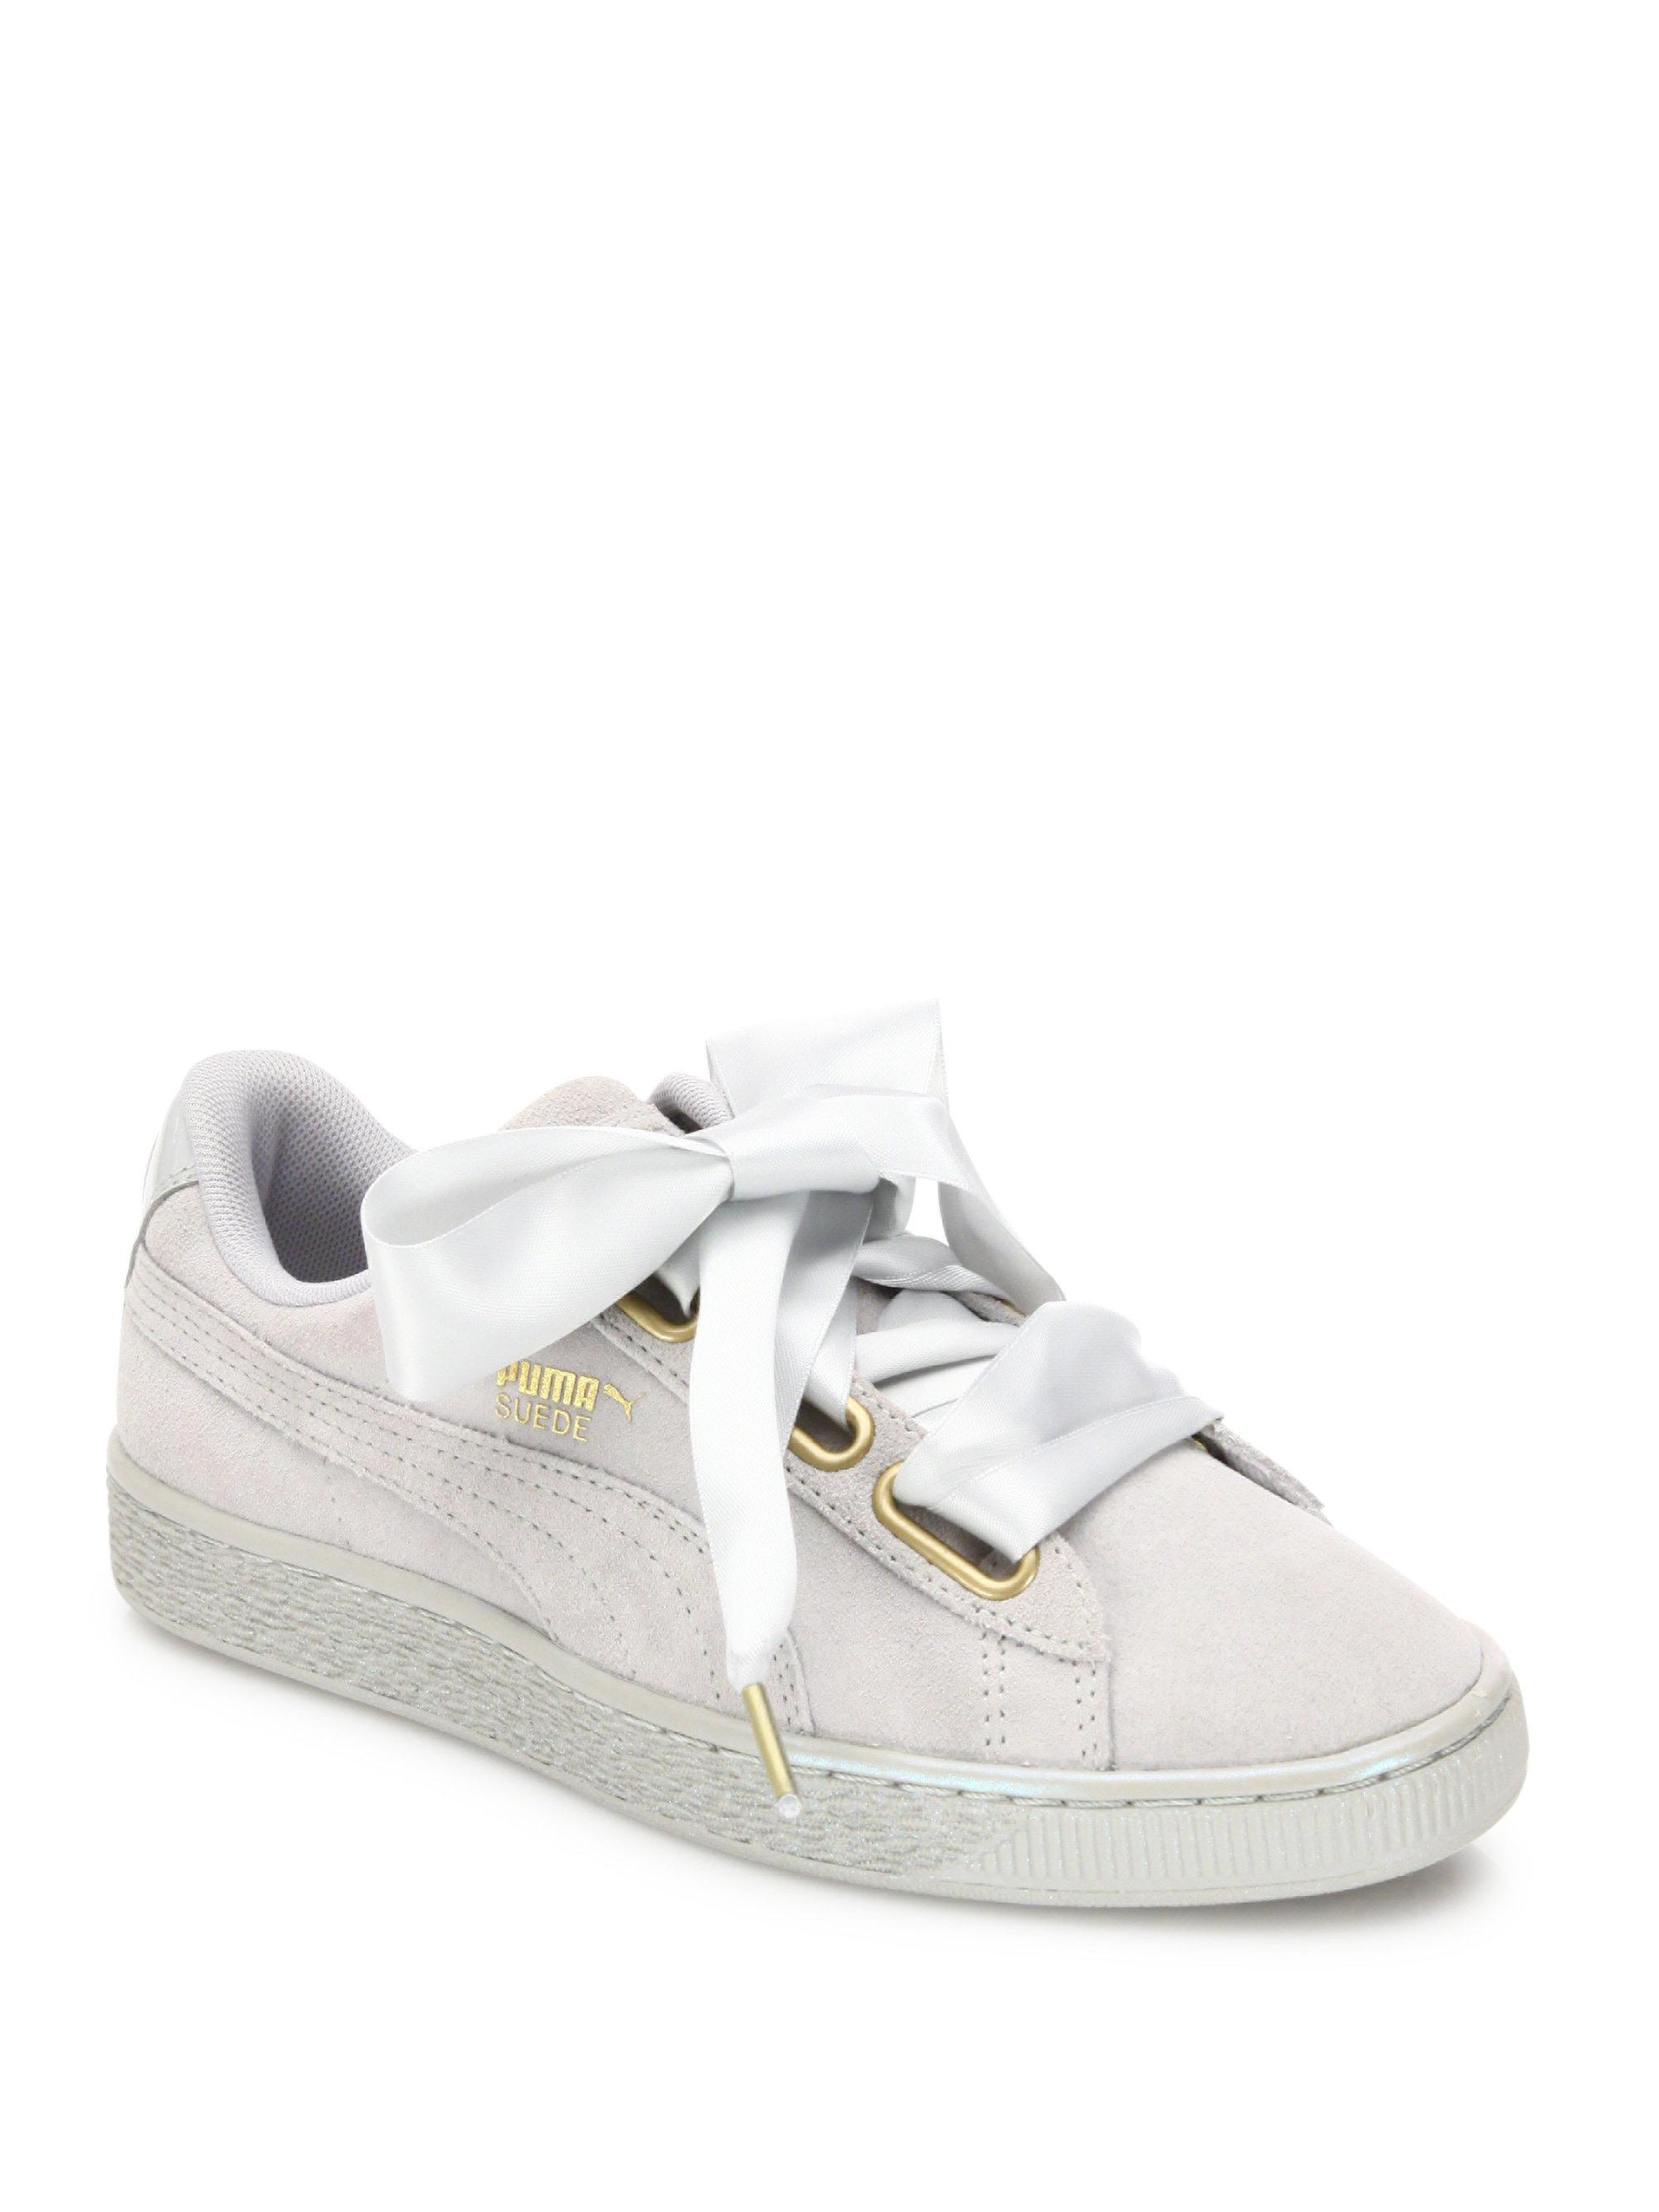 848791457f4 Lyst - PUMA Basket Heart Suede   Satin Low-Top Sneakers in Gray